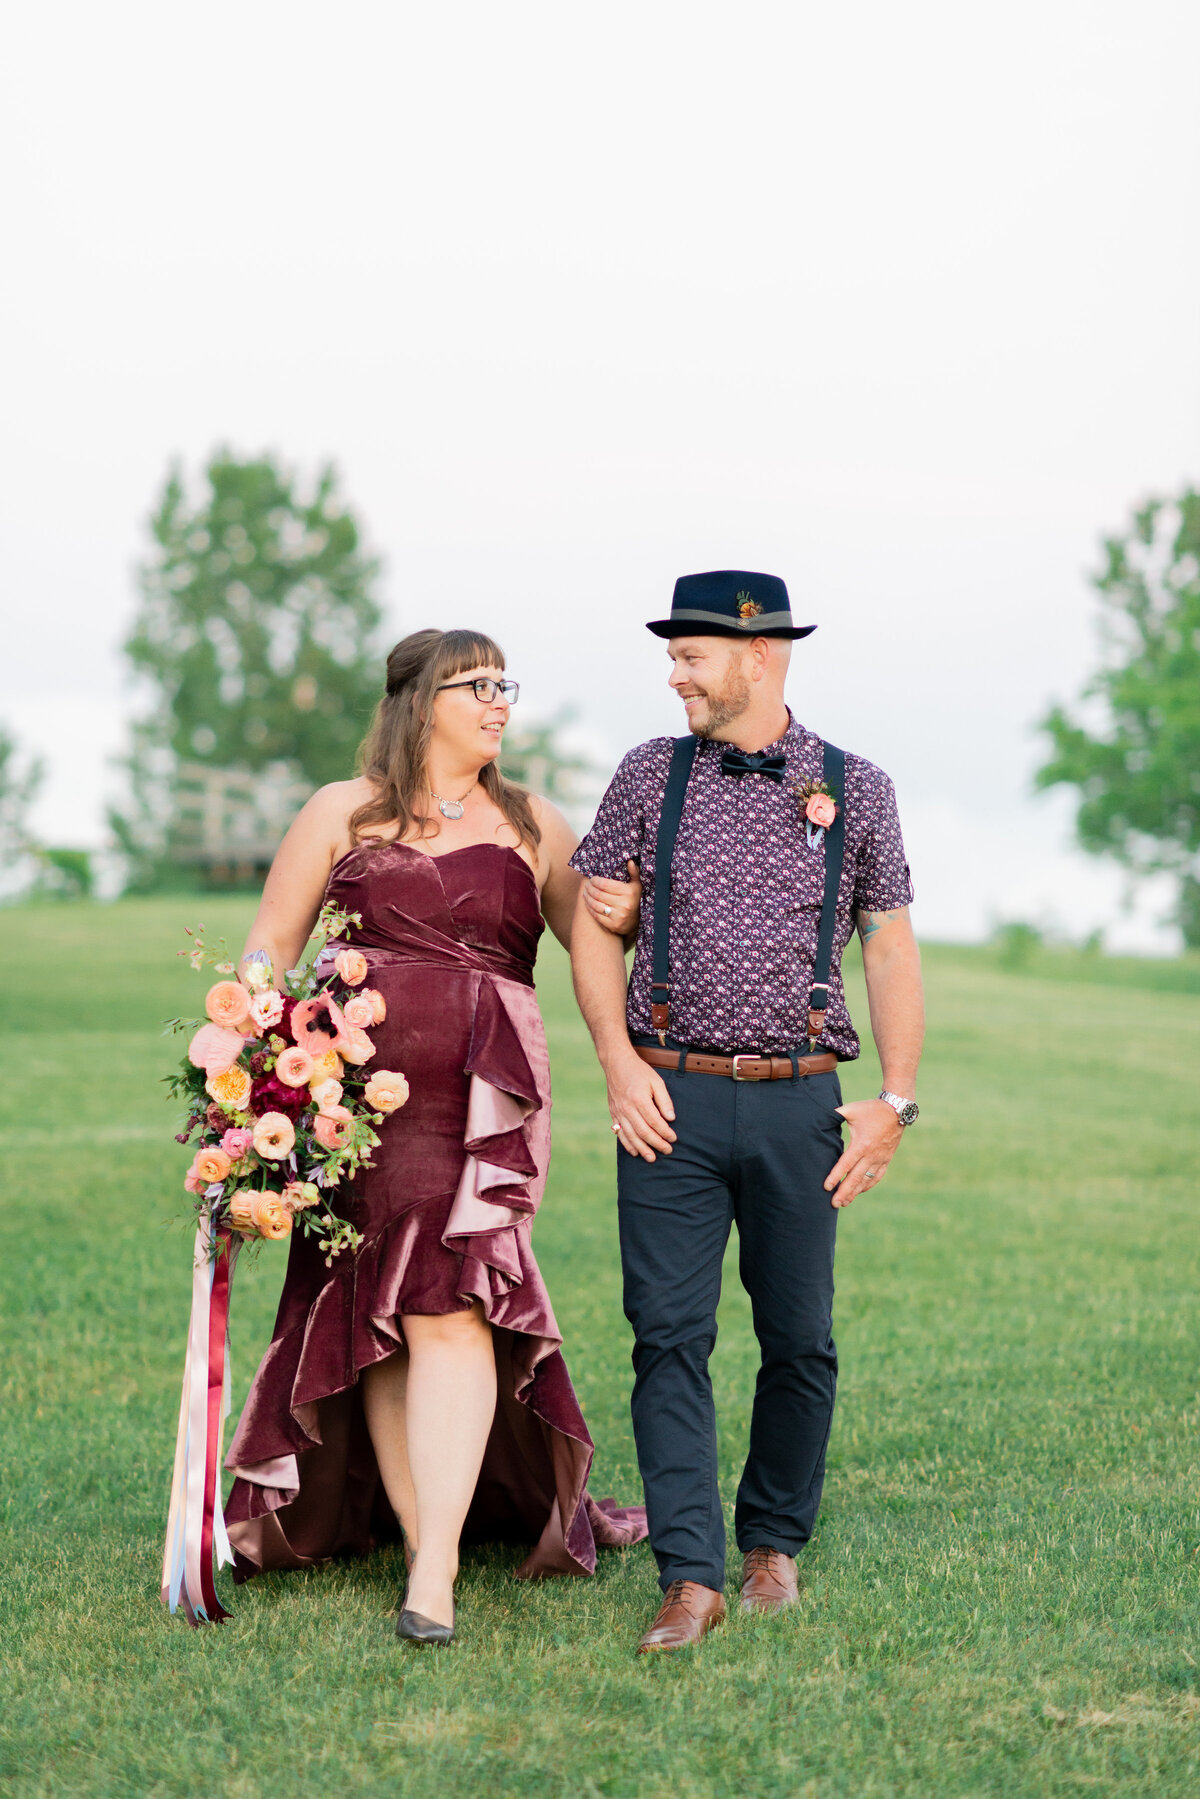 Tina-and-Harold-Wedding_Whitney-Heard-Photography_2018-06-01T20_08_25_DSC_0244